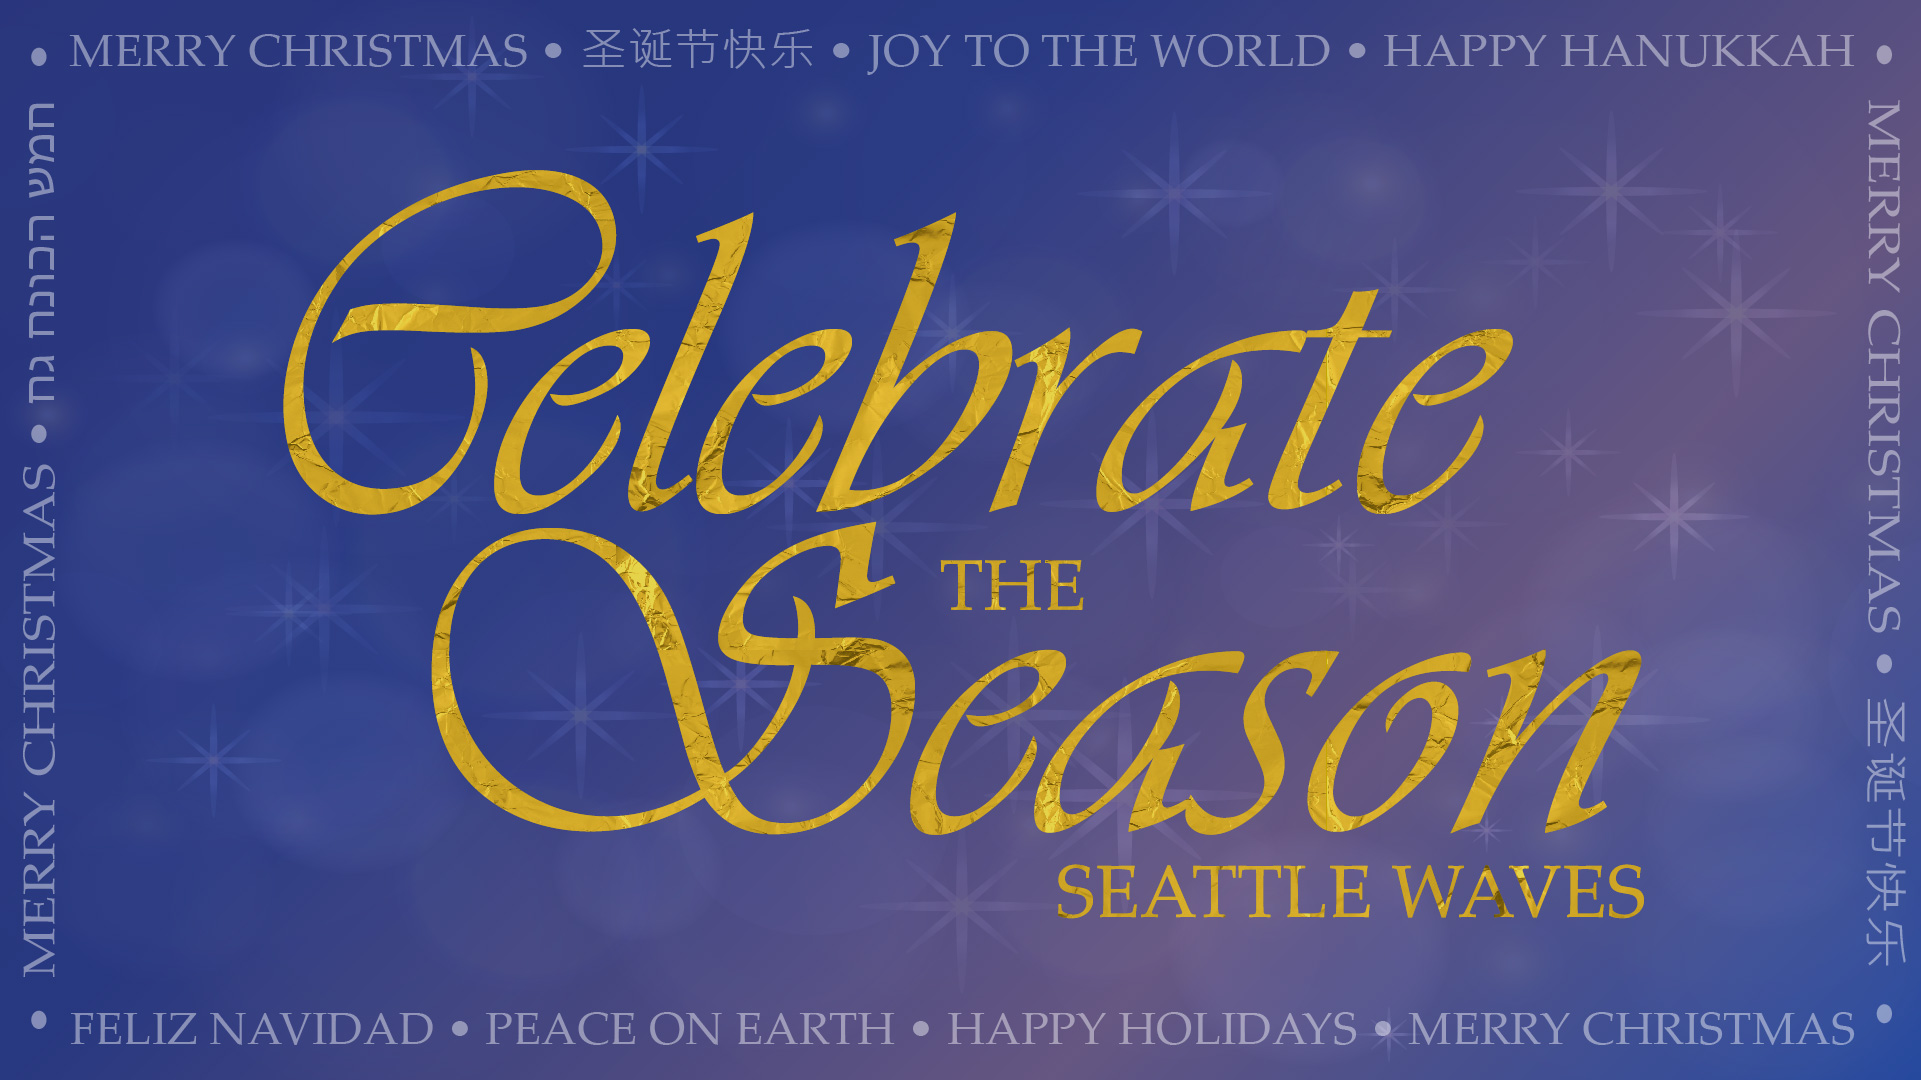 Celebrate the season with Seattle Waves logo